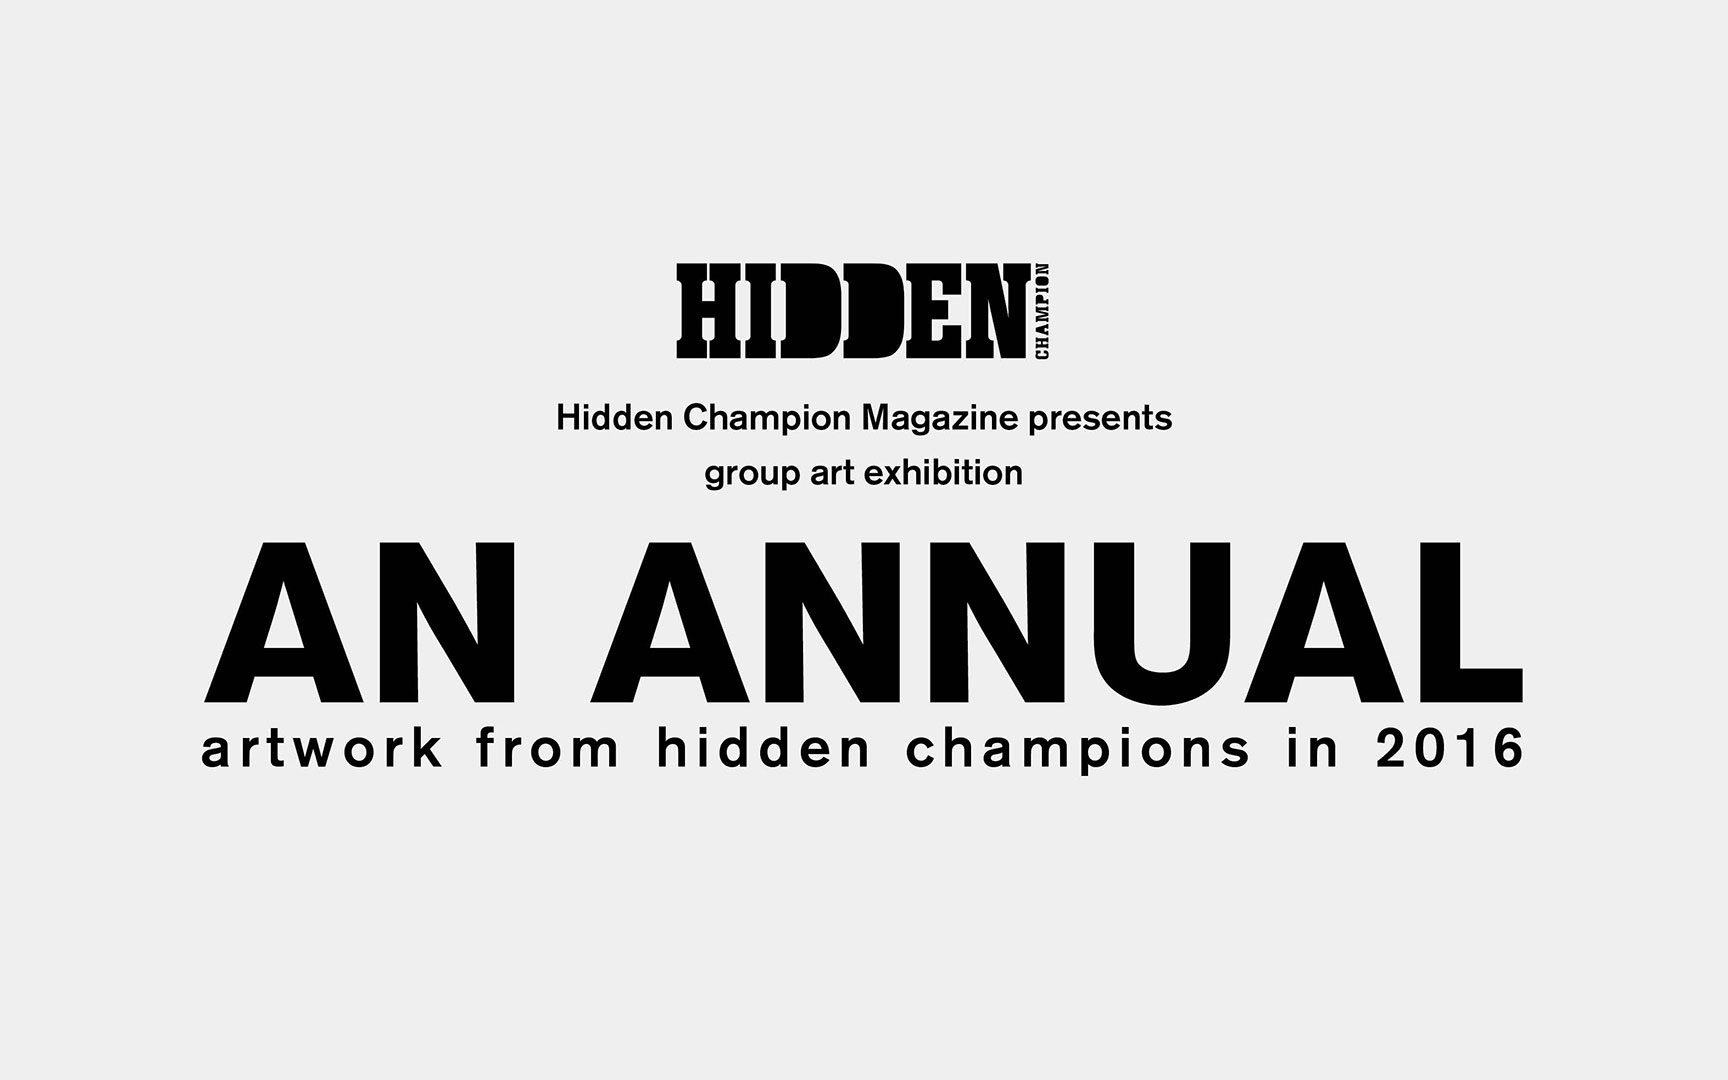 """AN ANNUAL"" artwork from hidden champions in 2016"